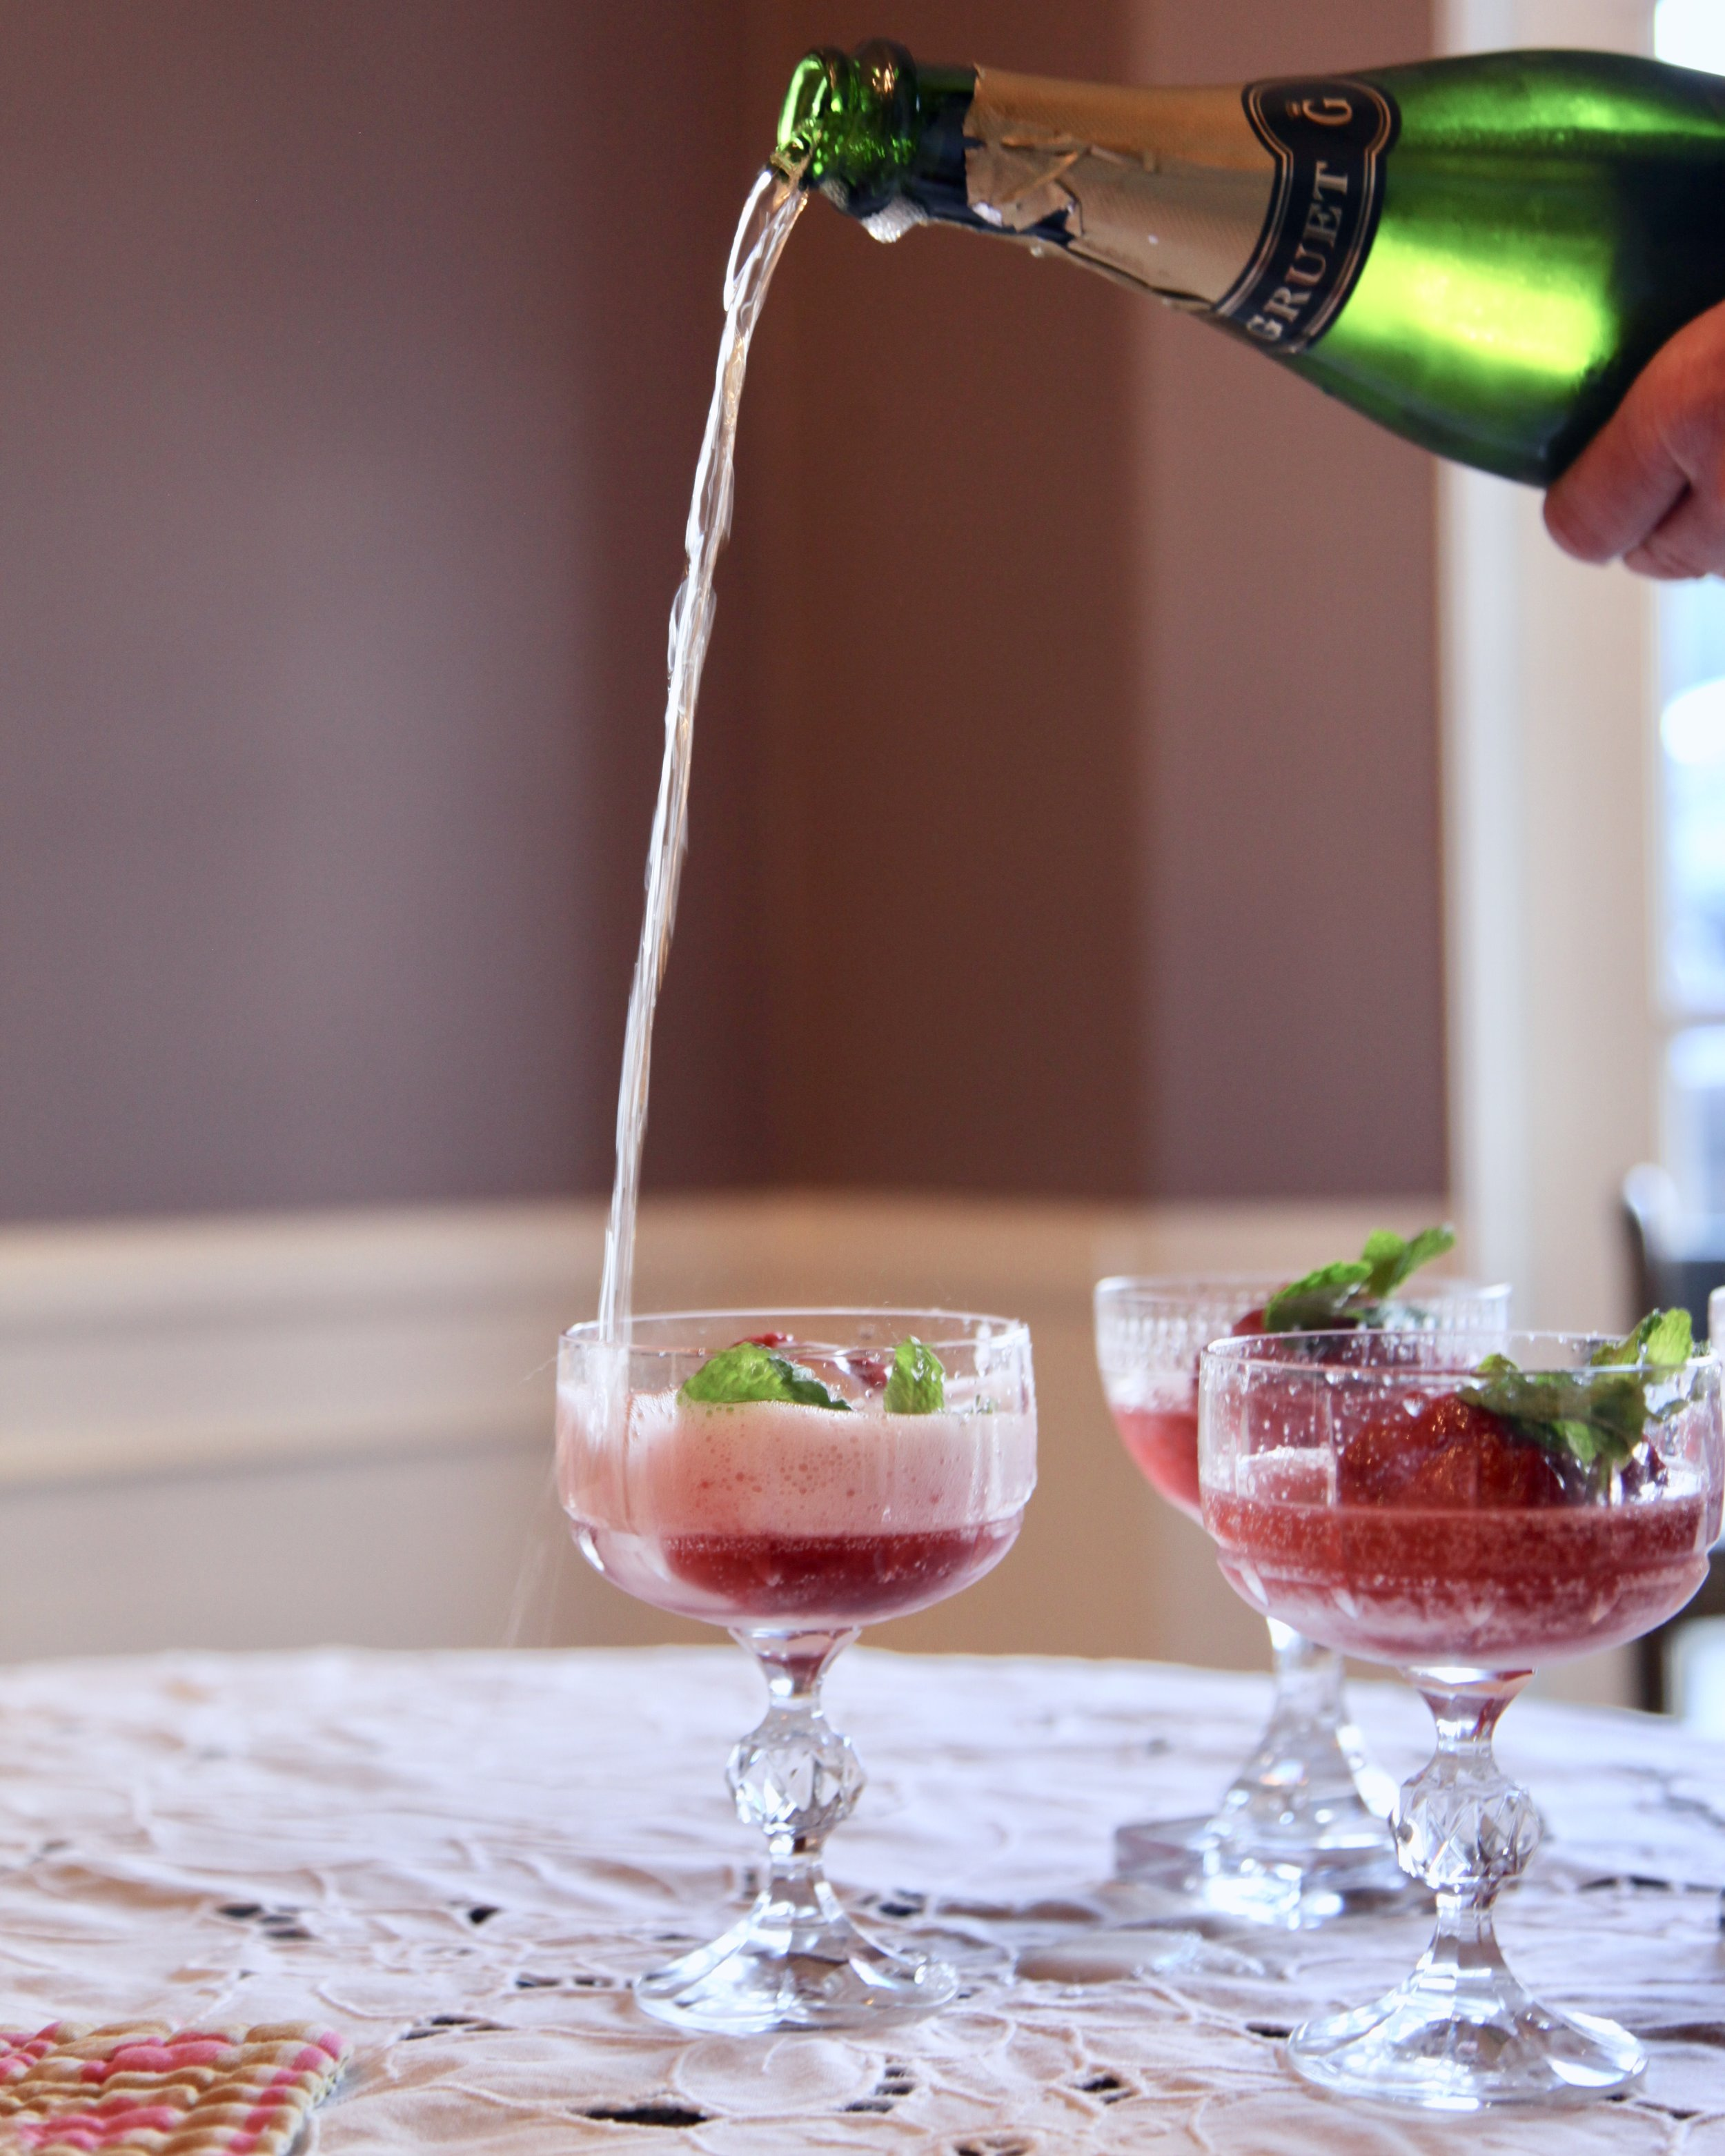 Get ready for the compliments when serving this simple, yet yummy cocktail or desert.